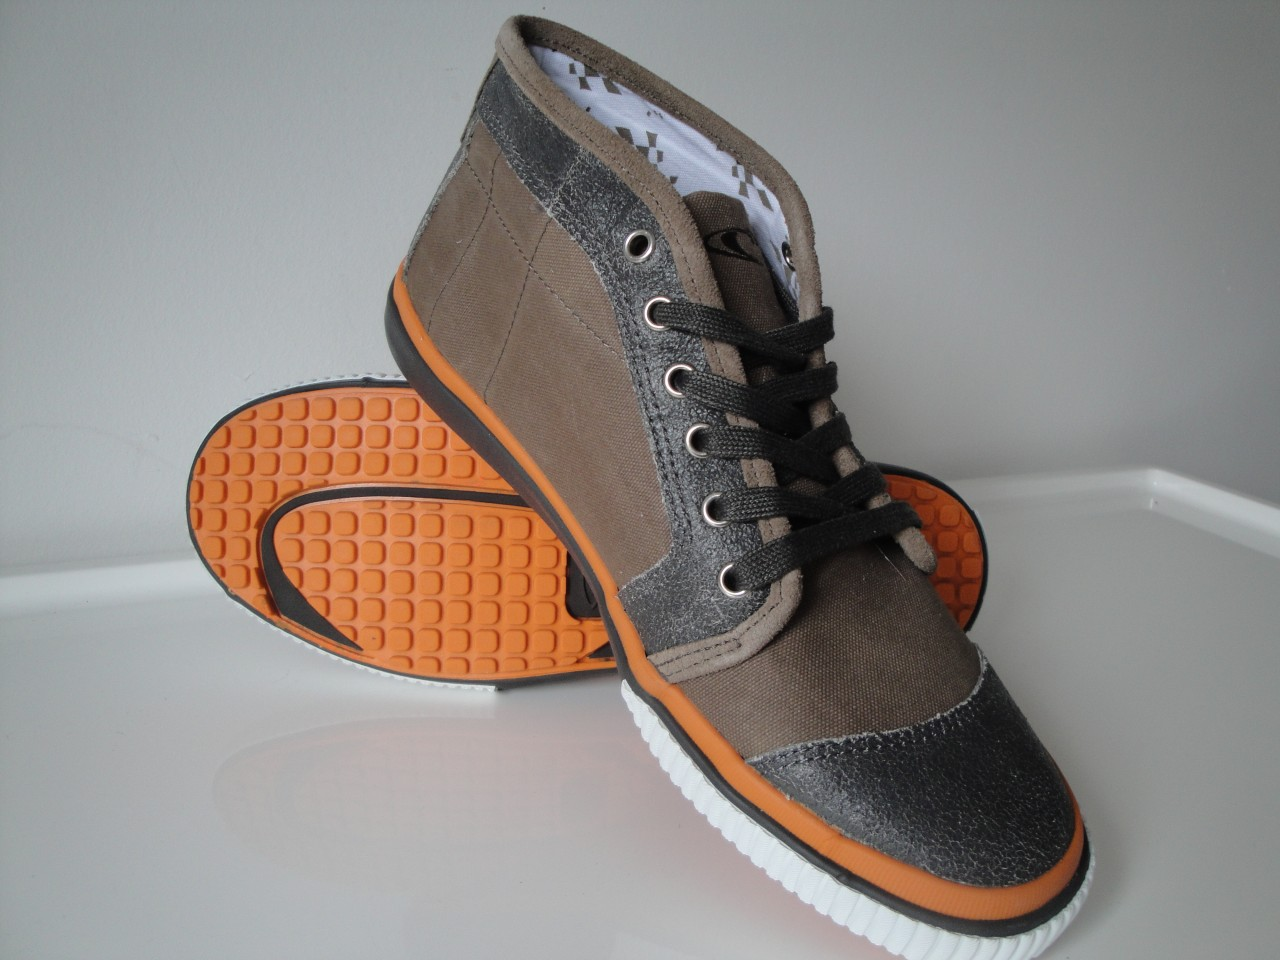 Skate shoes rebel - O 039 Neill Rebel Skate Shoes Boots Traines